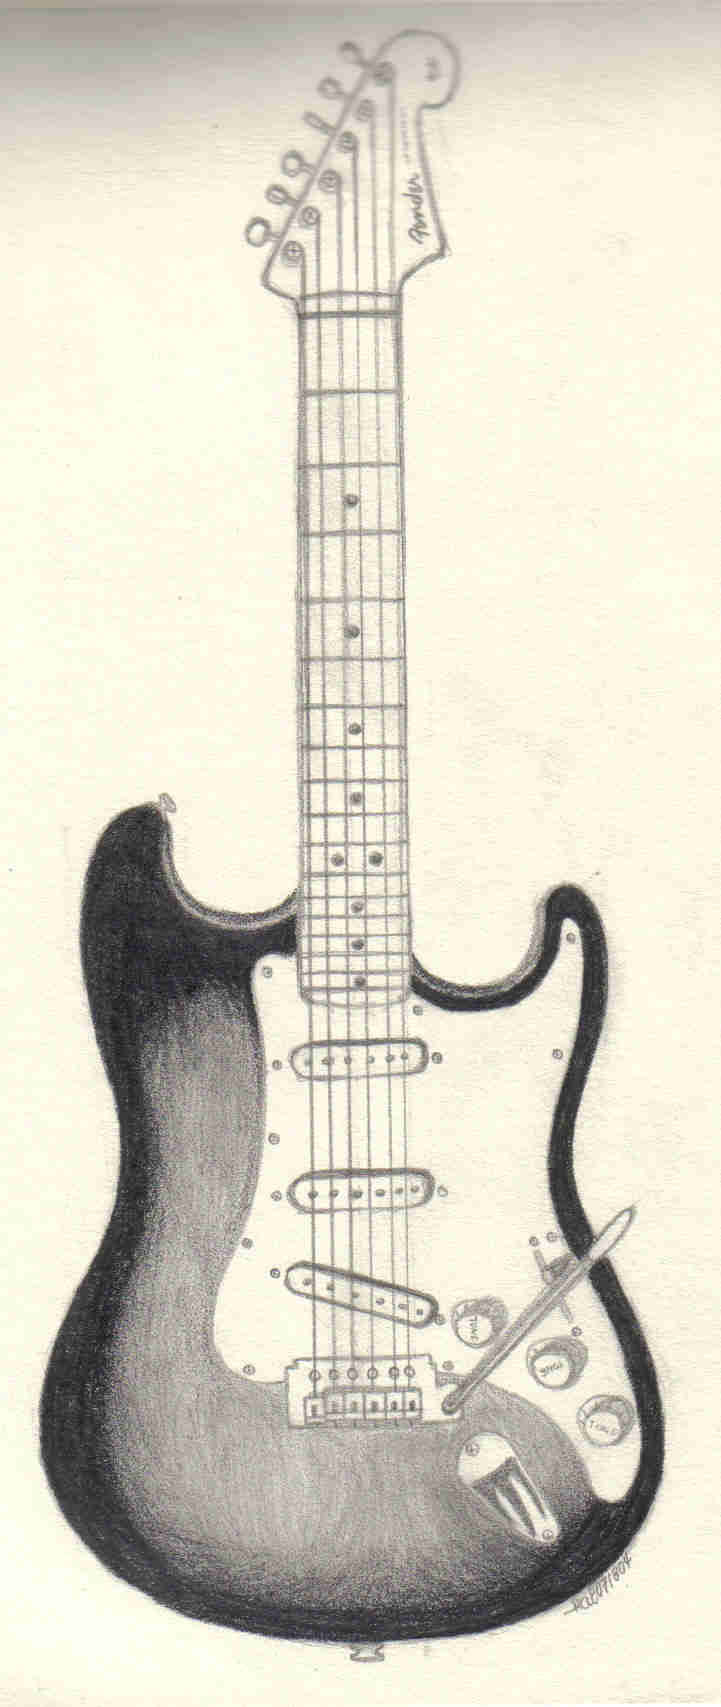 The Best Free Stratocaster Drawing Images  Download From 40 Free Drawings Of Stratocaster At